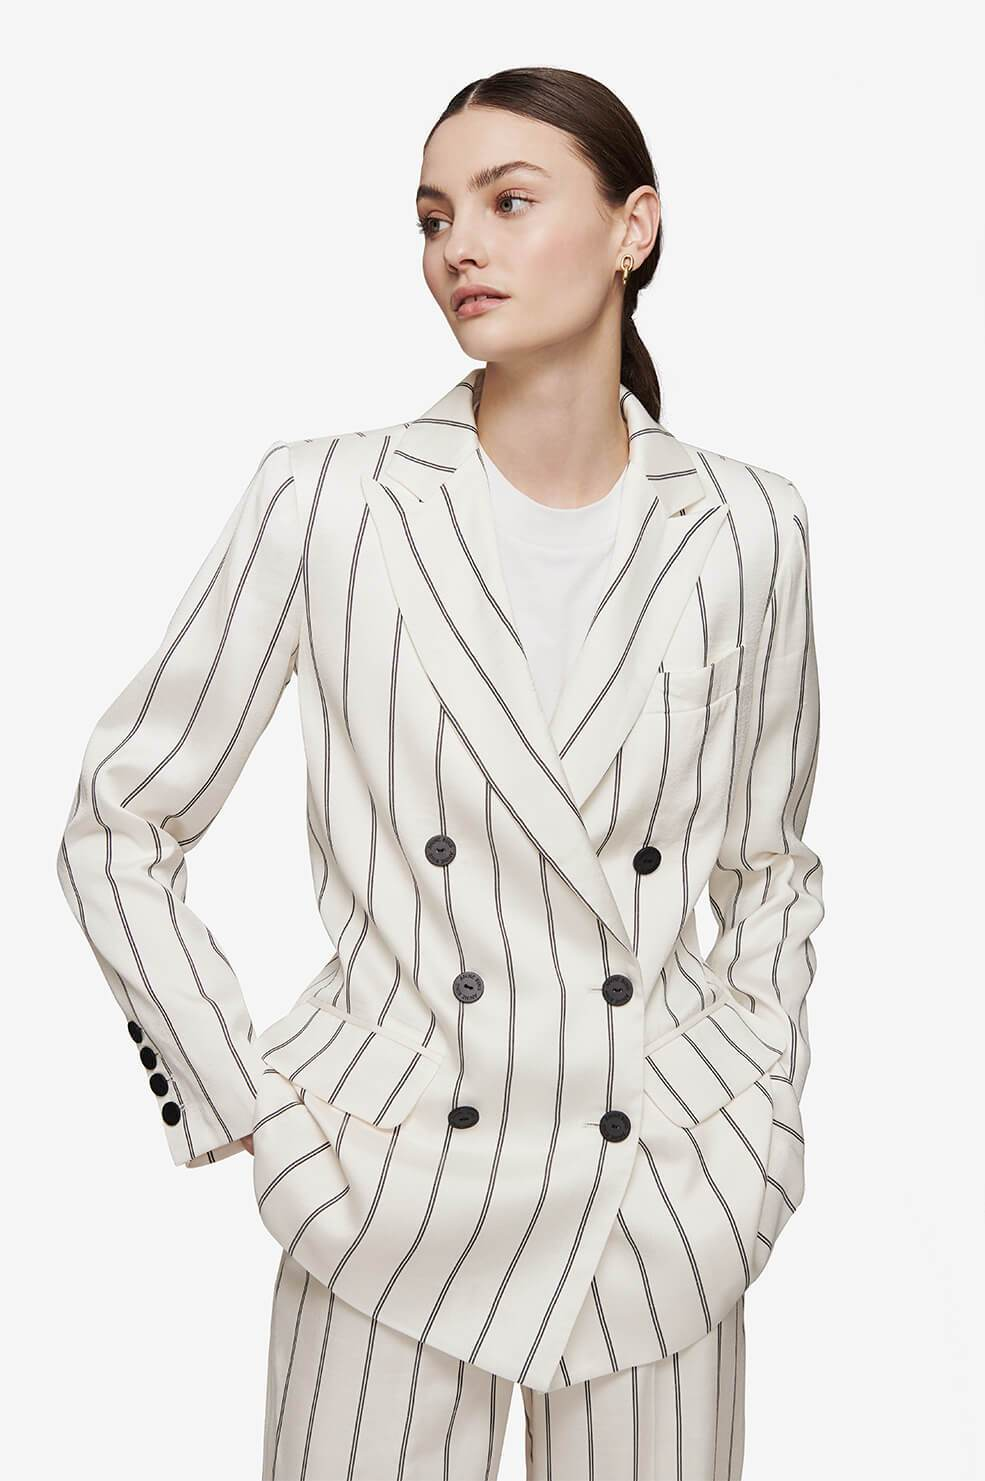 ANINE BING Ryan Blazer - Cream And Black Stripe